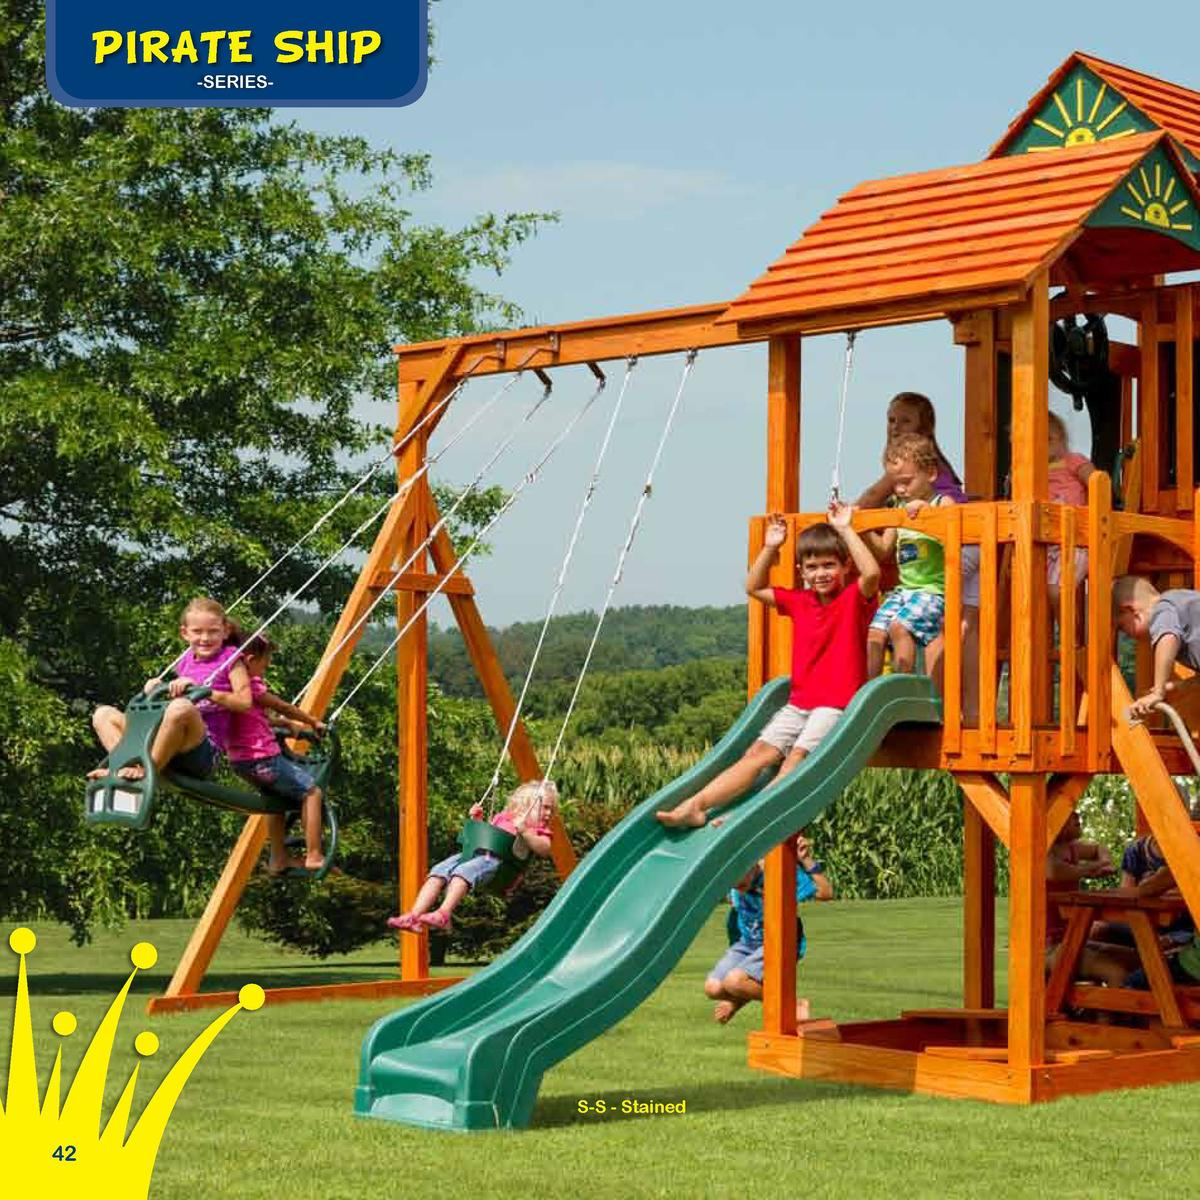 Play Deck Roofing Choices  PIRATE SHIP  The Wave Dancer  -SERIESFabric  Plastic  Clap Board  Border Needed   96 Space Need...